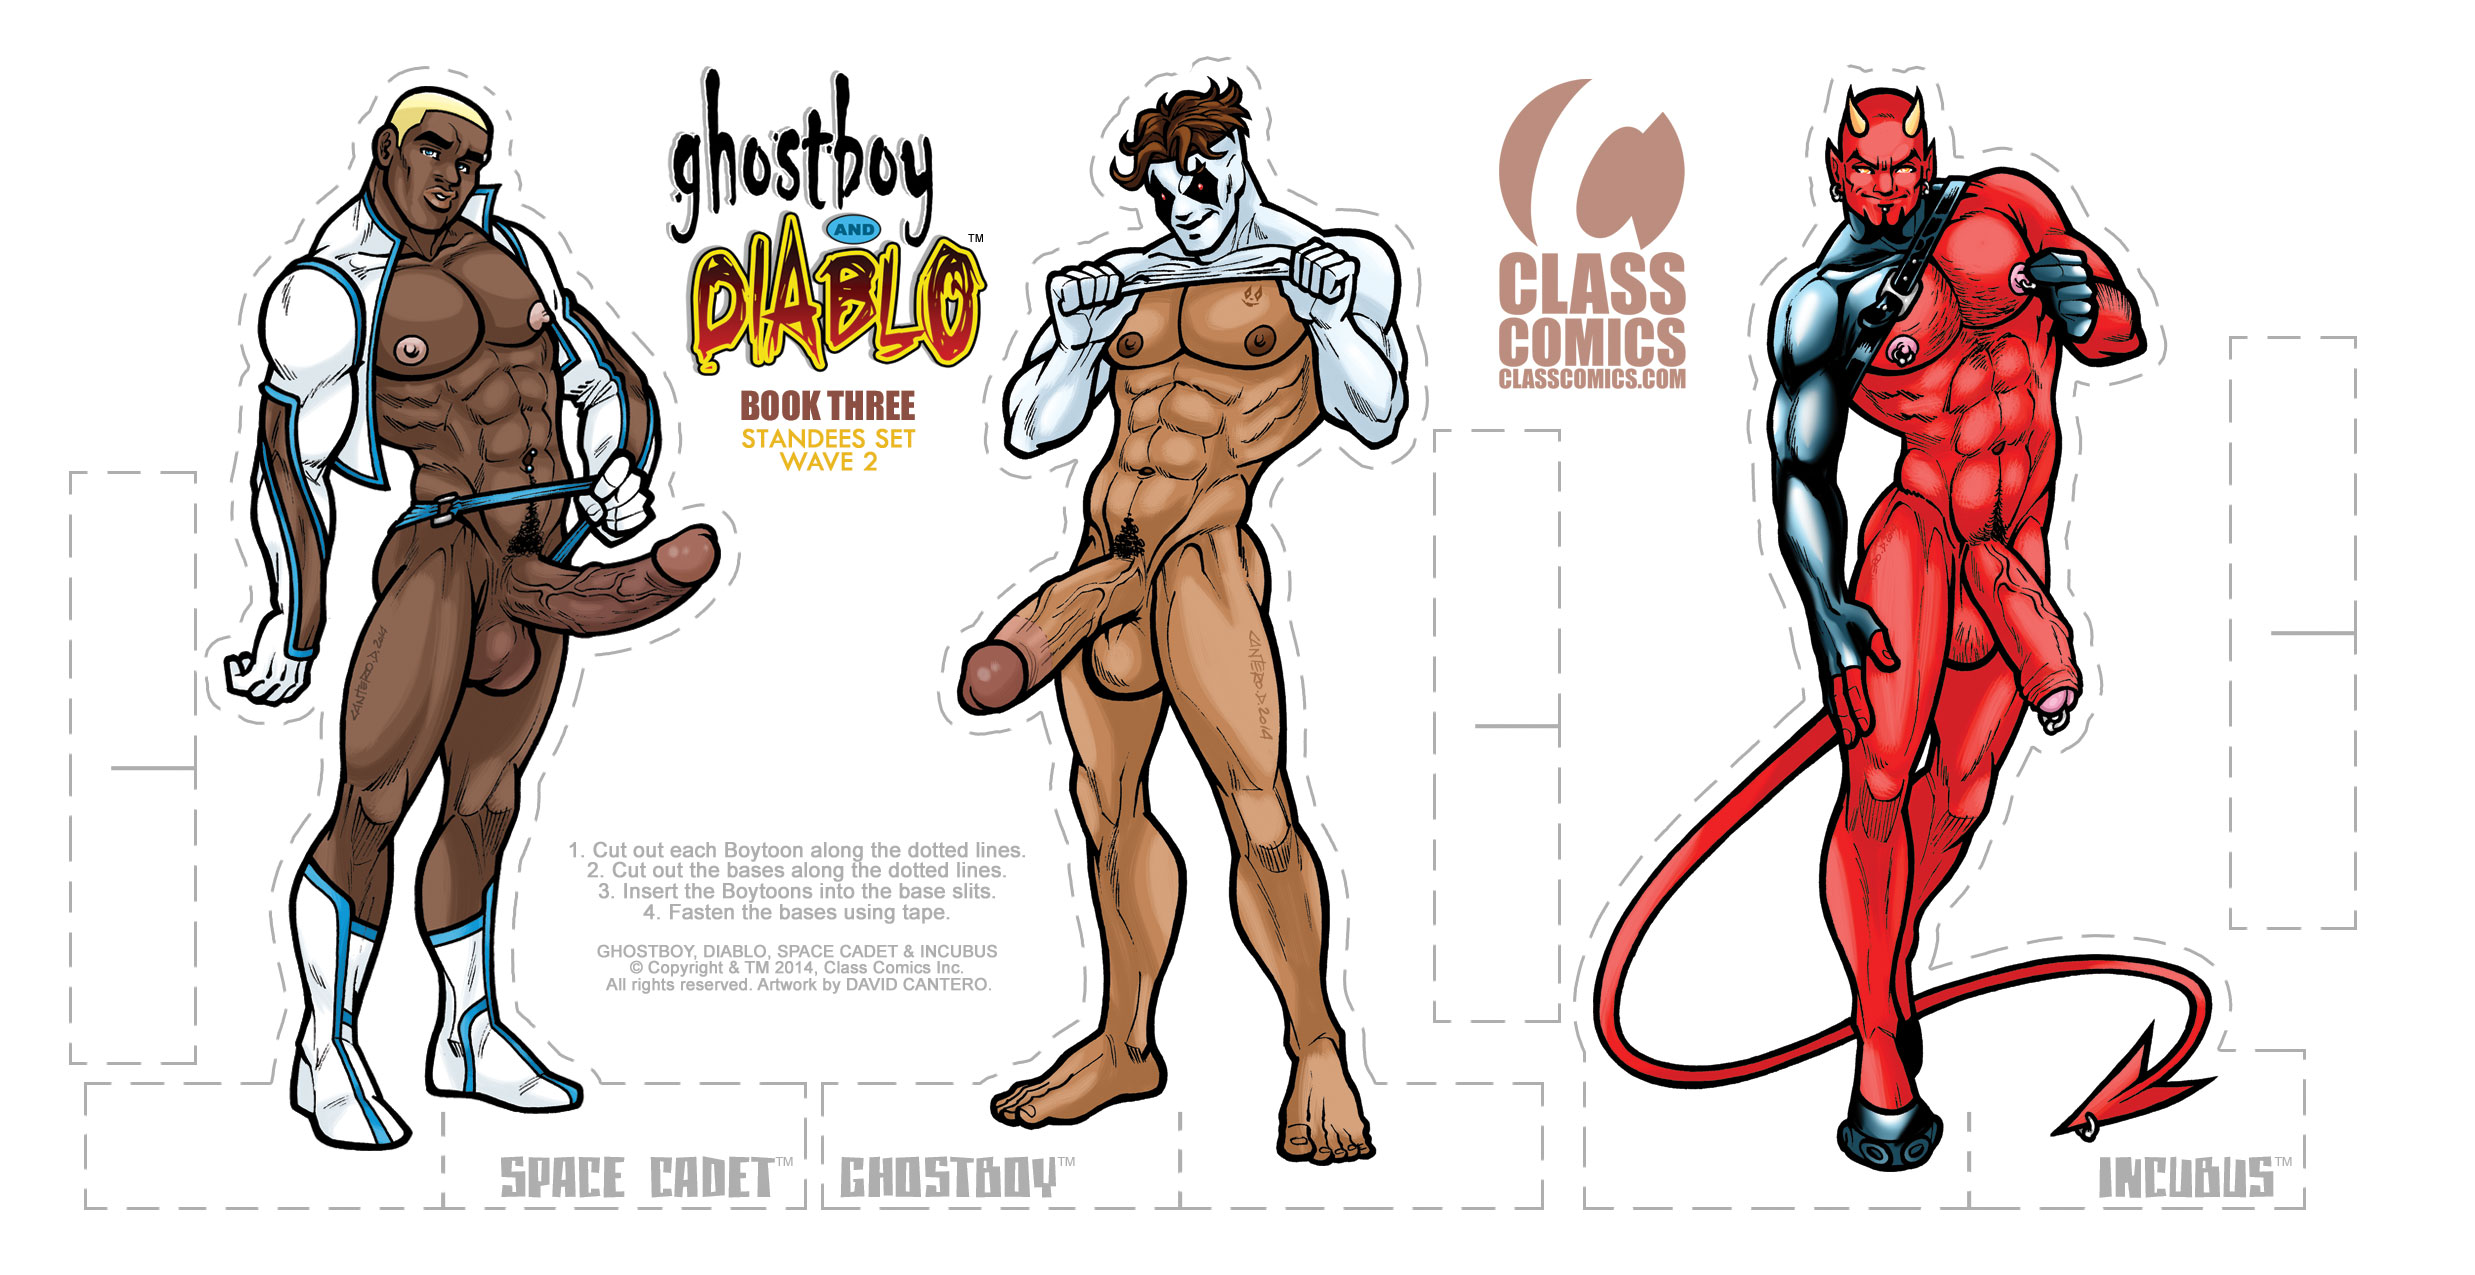 GHOSTBOY and DIABLO #3 – Paper Standees PACK card 2 of 2 – Art by David Cantero